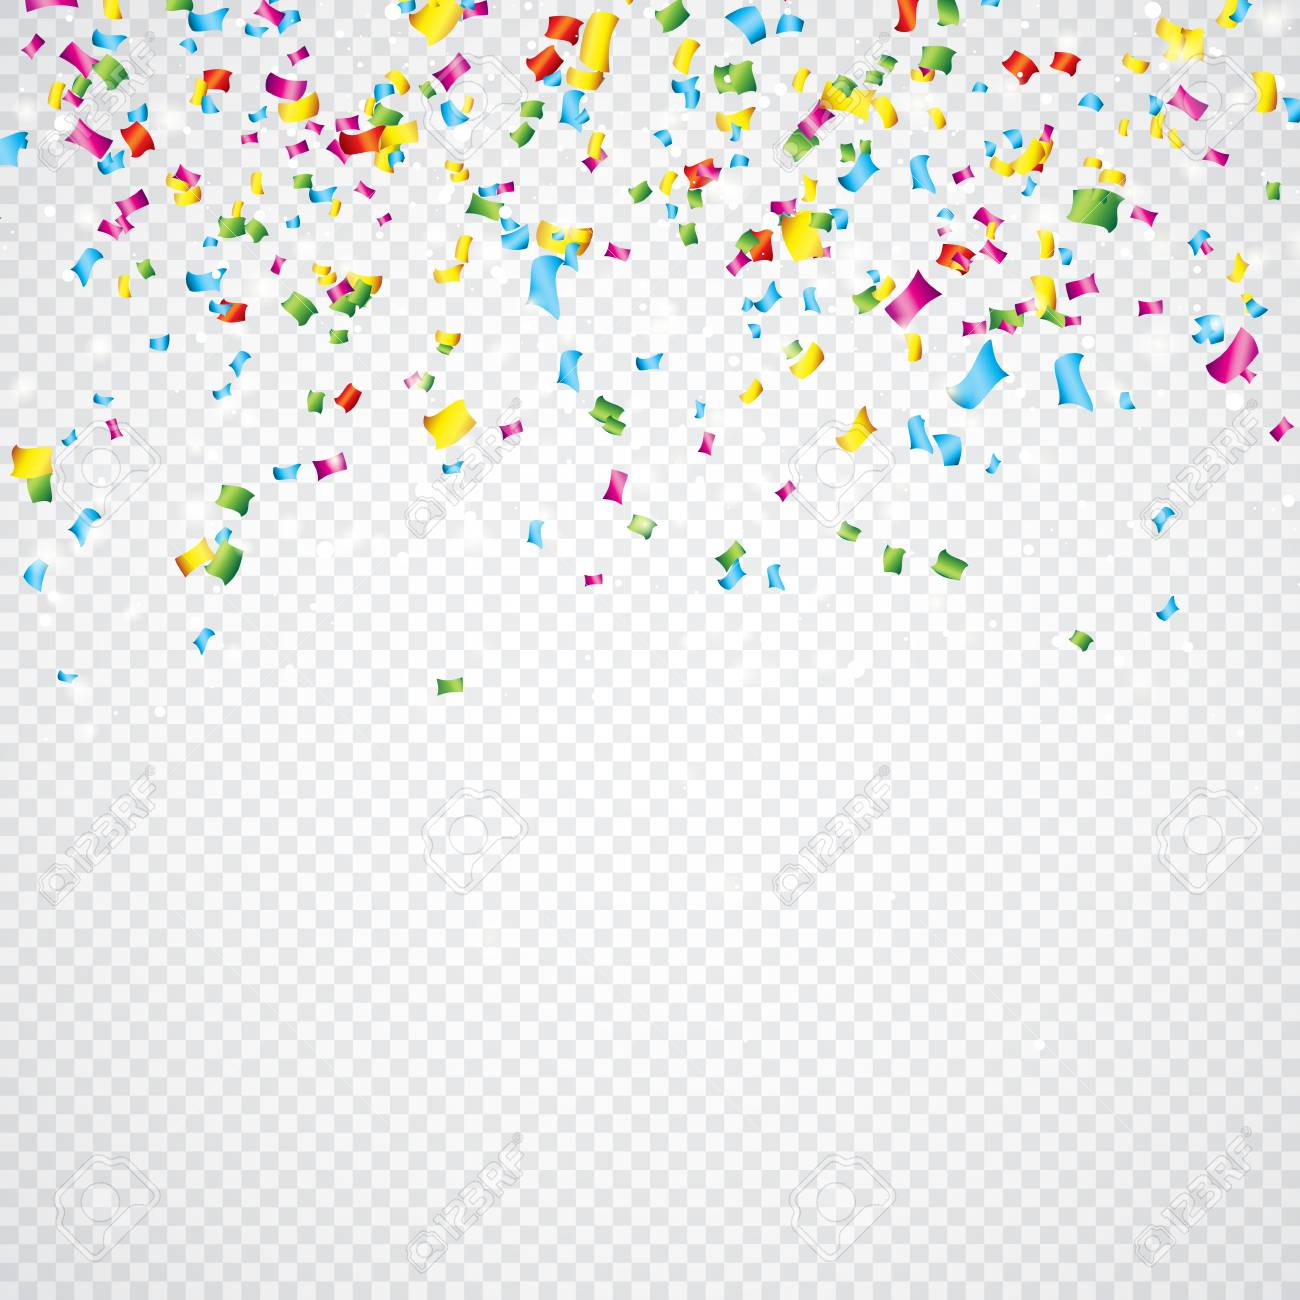 Colorful Vector Confetti Illustration On Transparent Background Royalty Free Cliparts Vectors And Stock Illustration Image 89142216 There is no psd format for confetti png transparent backgrounds, white, silver, party in our system. colorful vector confetti illustration on transparent background